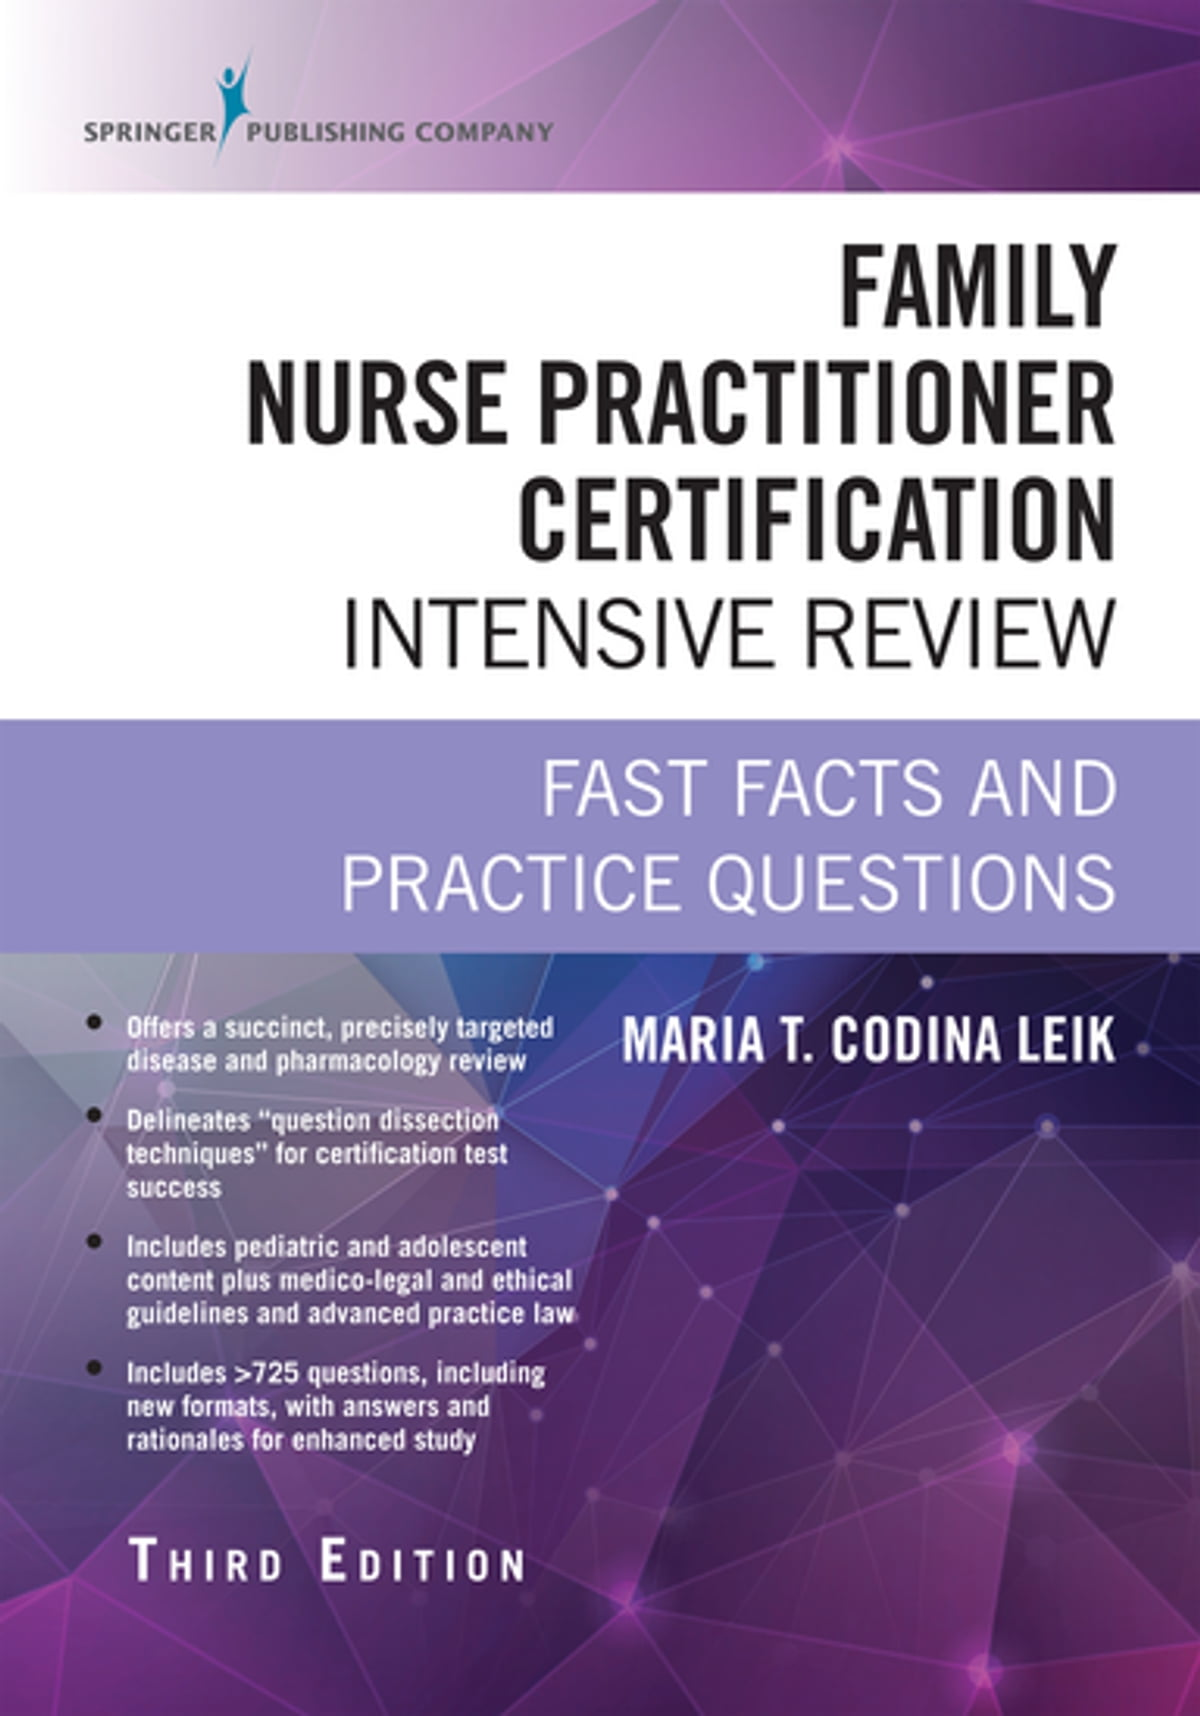 Family Nurse Practitioner Certification Intensive Review Third